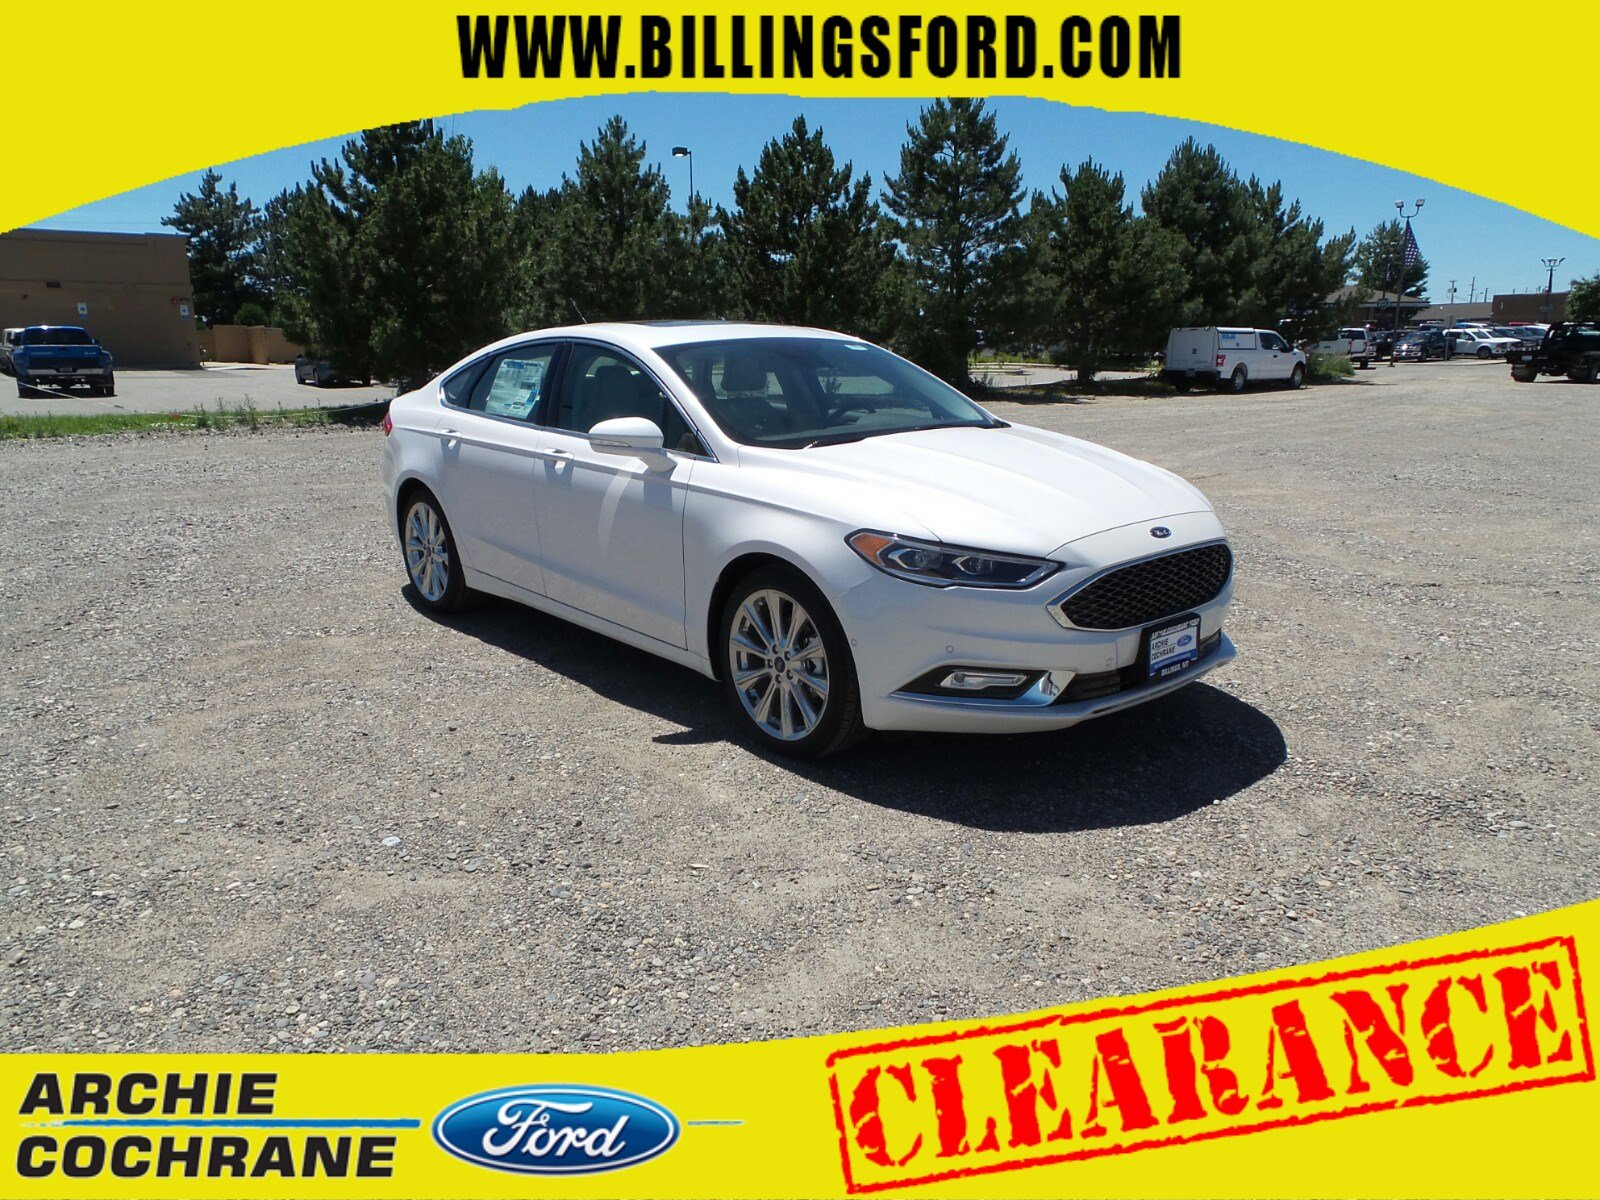 Ford Focus Alternator 2006 Location Archie Cochrane Dealership In Billings Mt 2018 Fusion Platinum Awd 20l